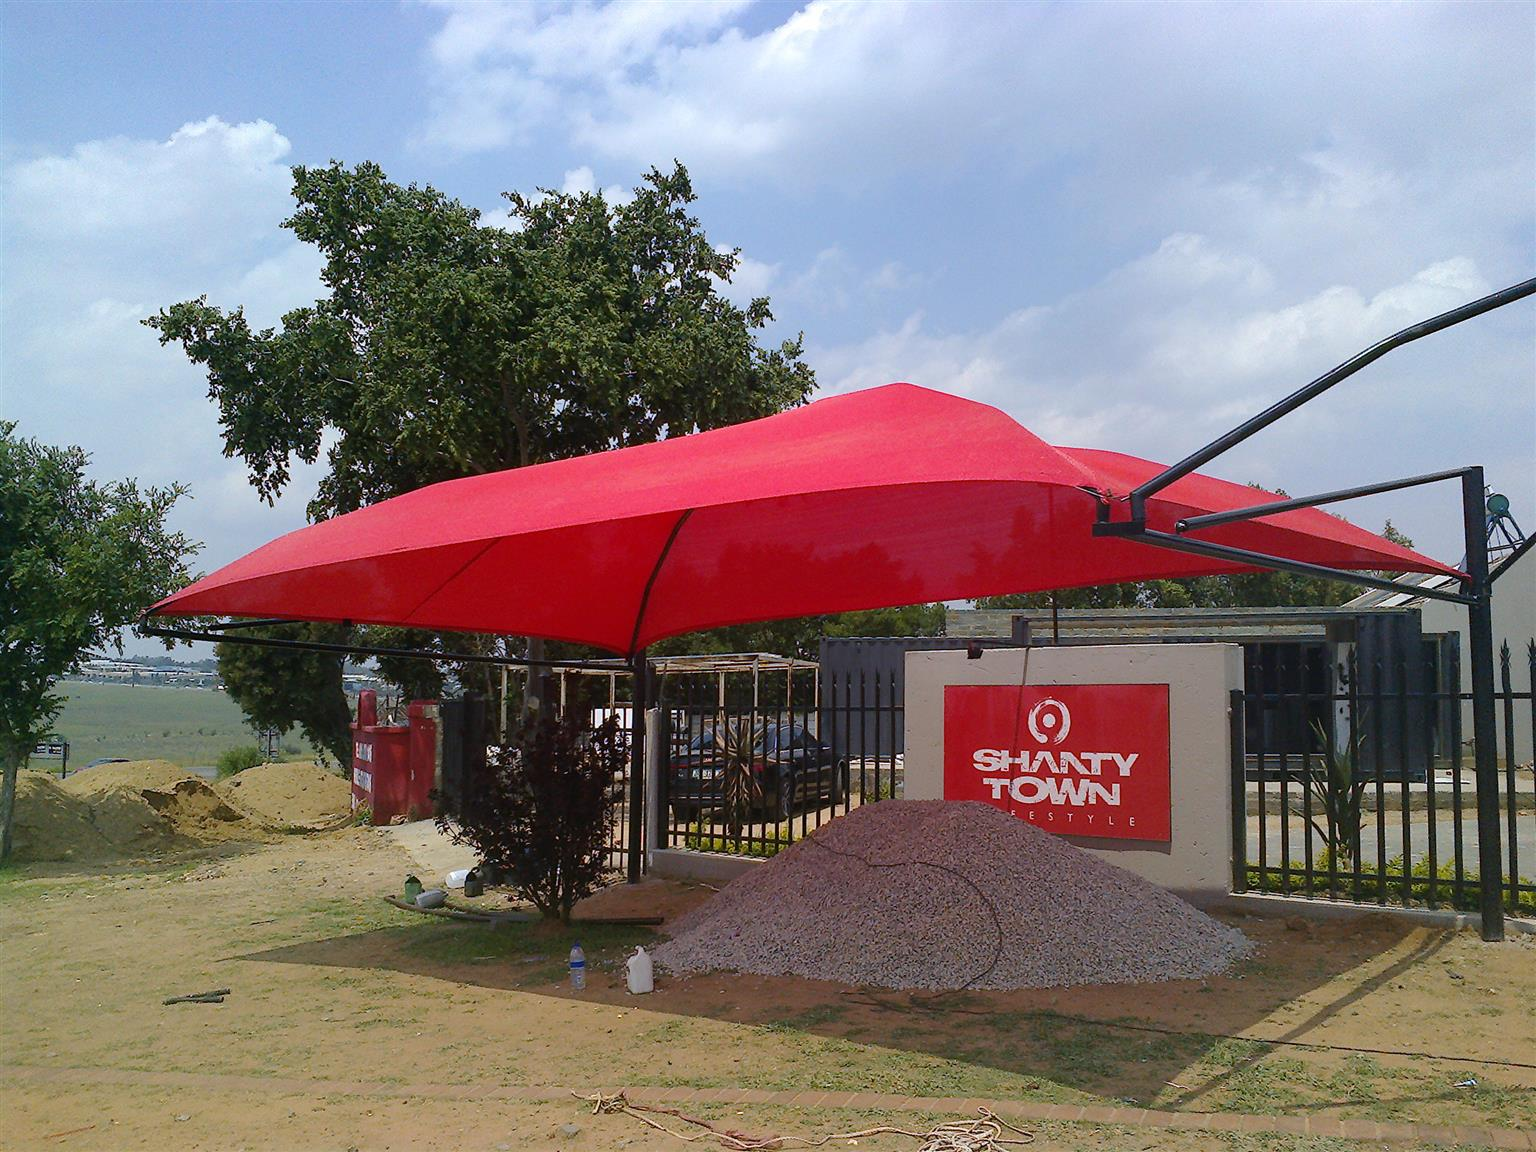 SHADEPORTS AND CARPORTS FROM R4000